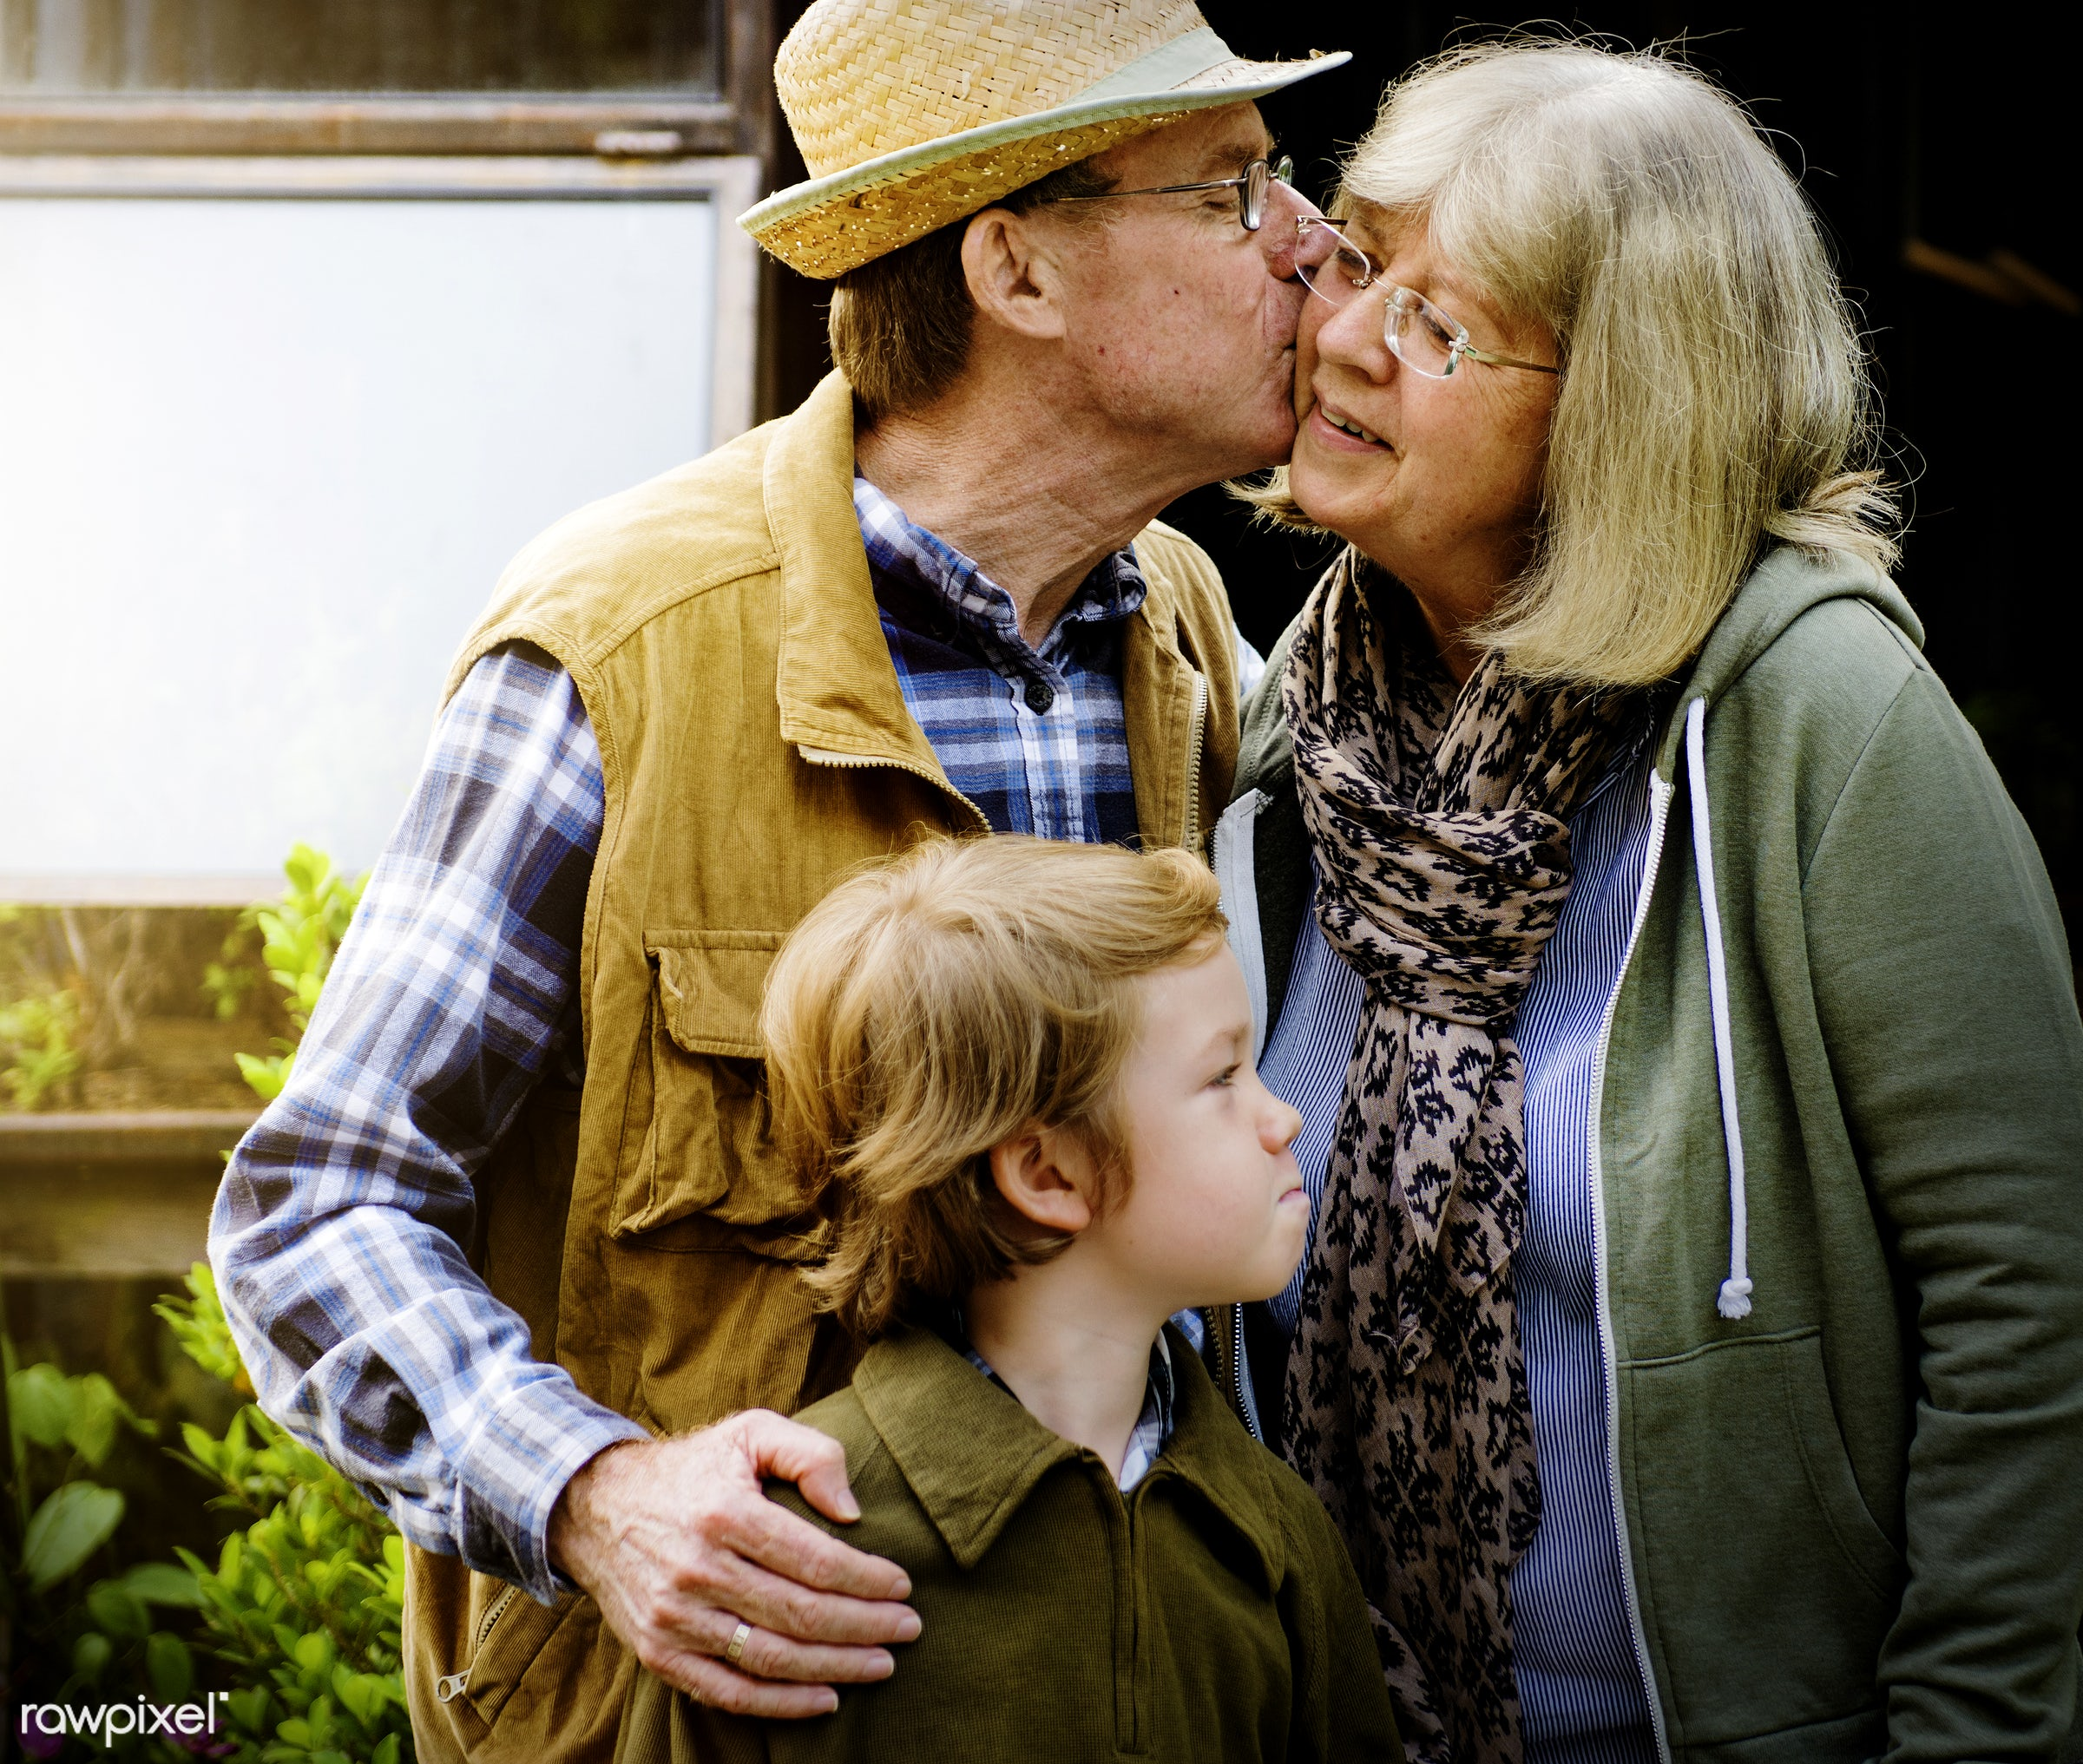 expression, person, grandfather, show, smitten, people, together, kid, grandchild, love, kiss, retirement, cherish, family,...